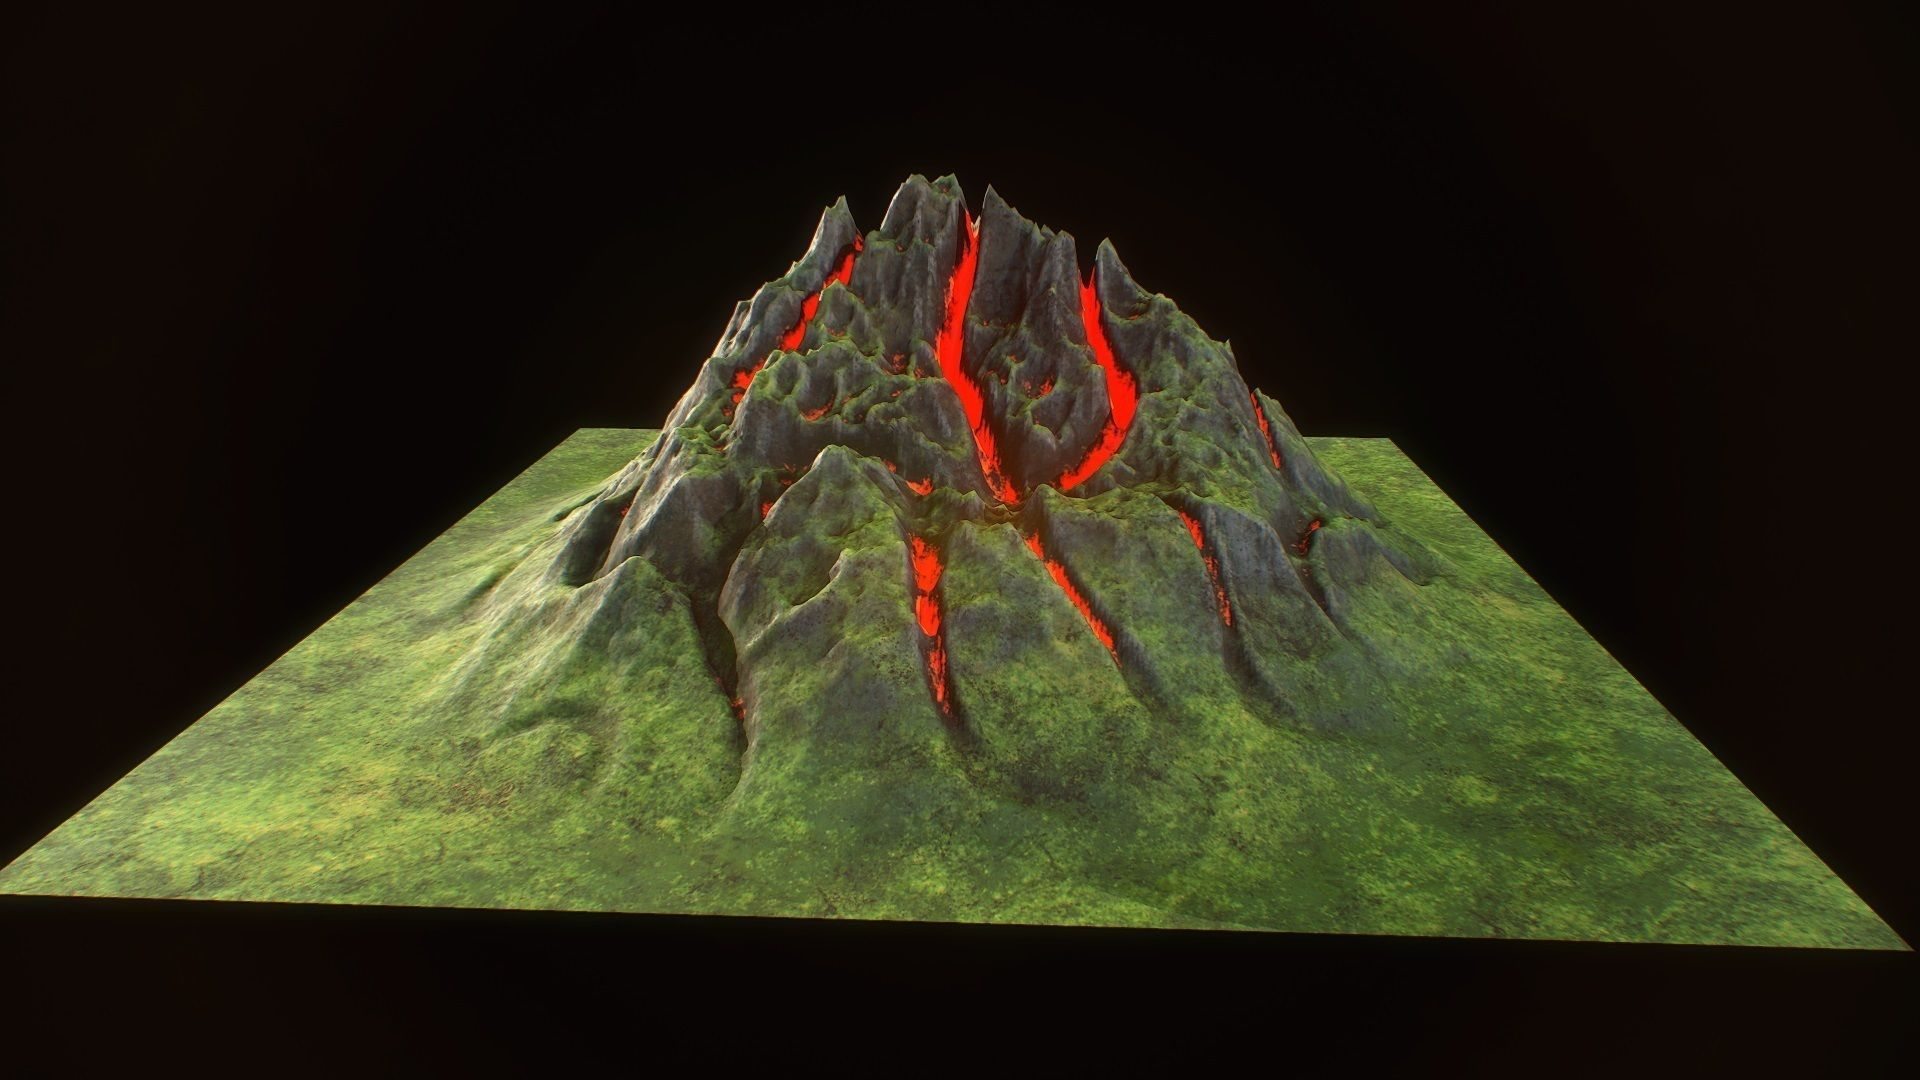 Fantasy mountain model for real time rendering